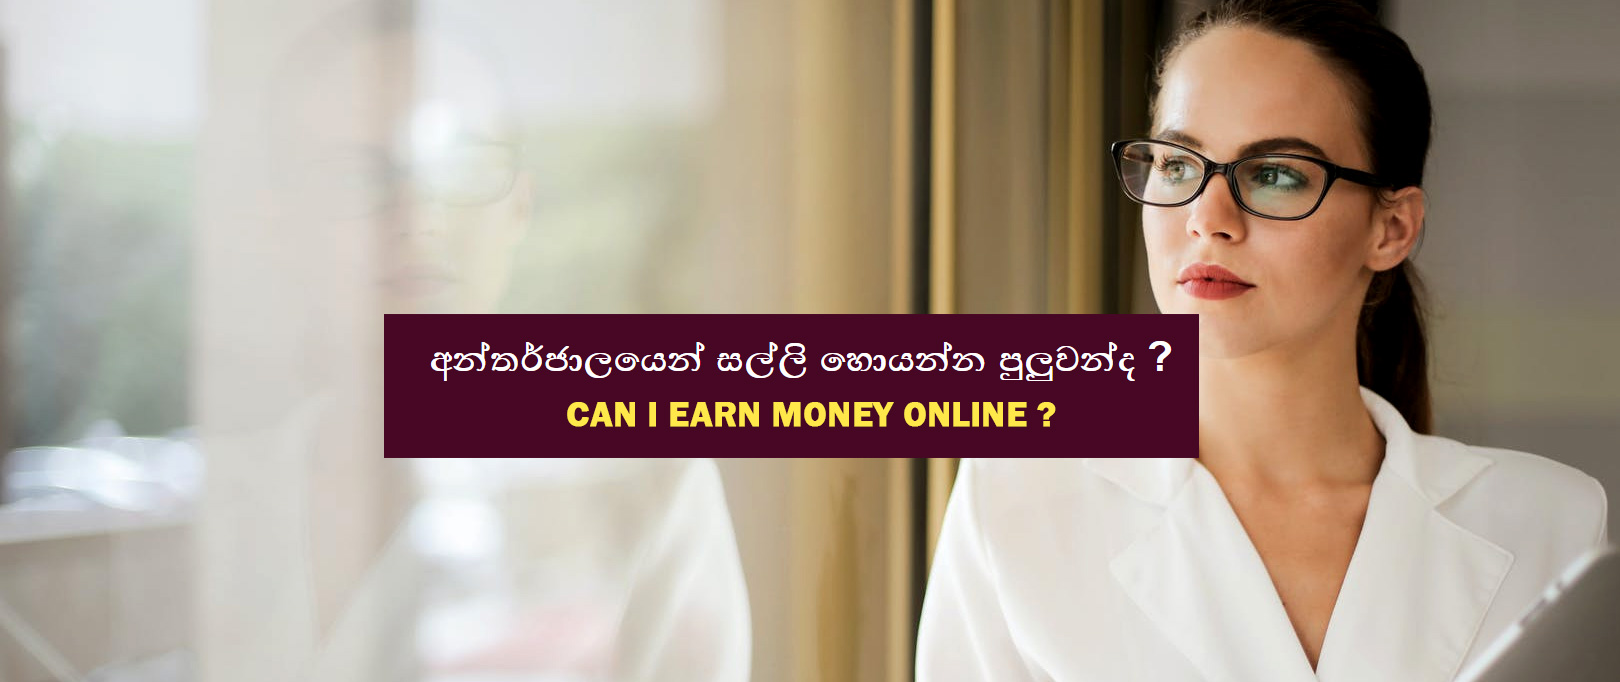 earn-money-online-tips-in-sinhala-sri-lanka